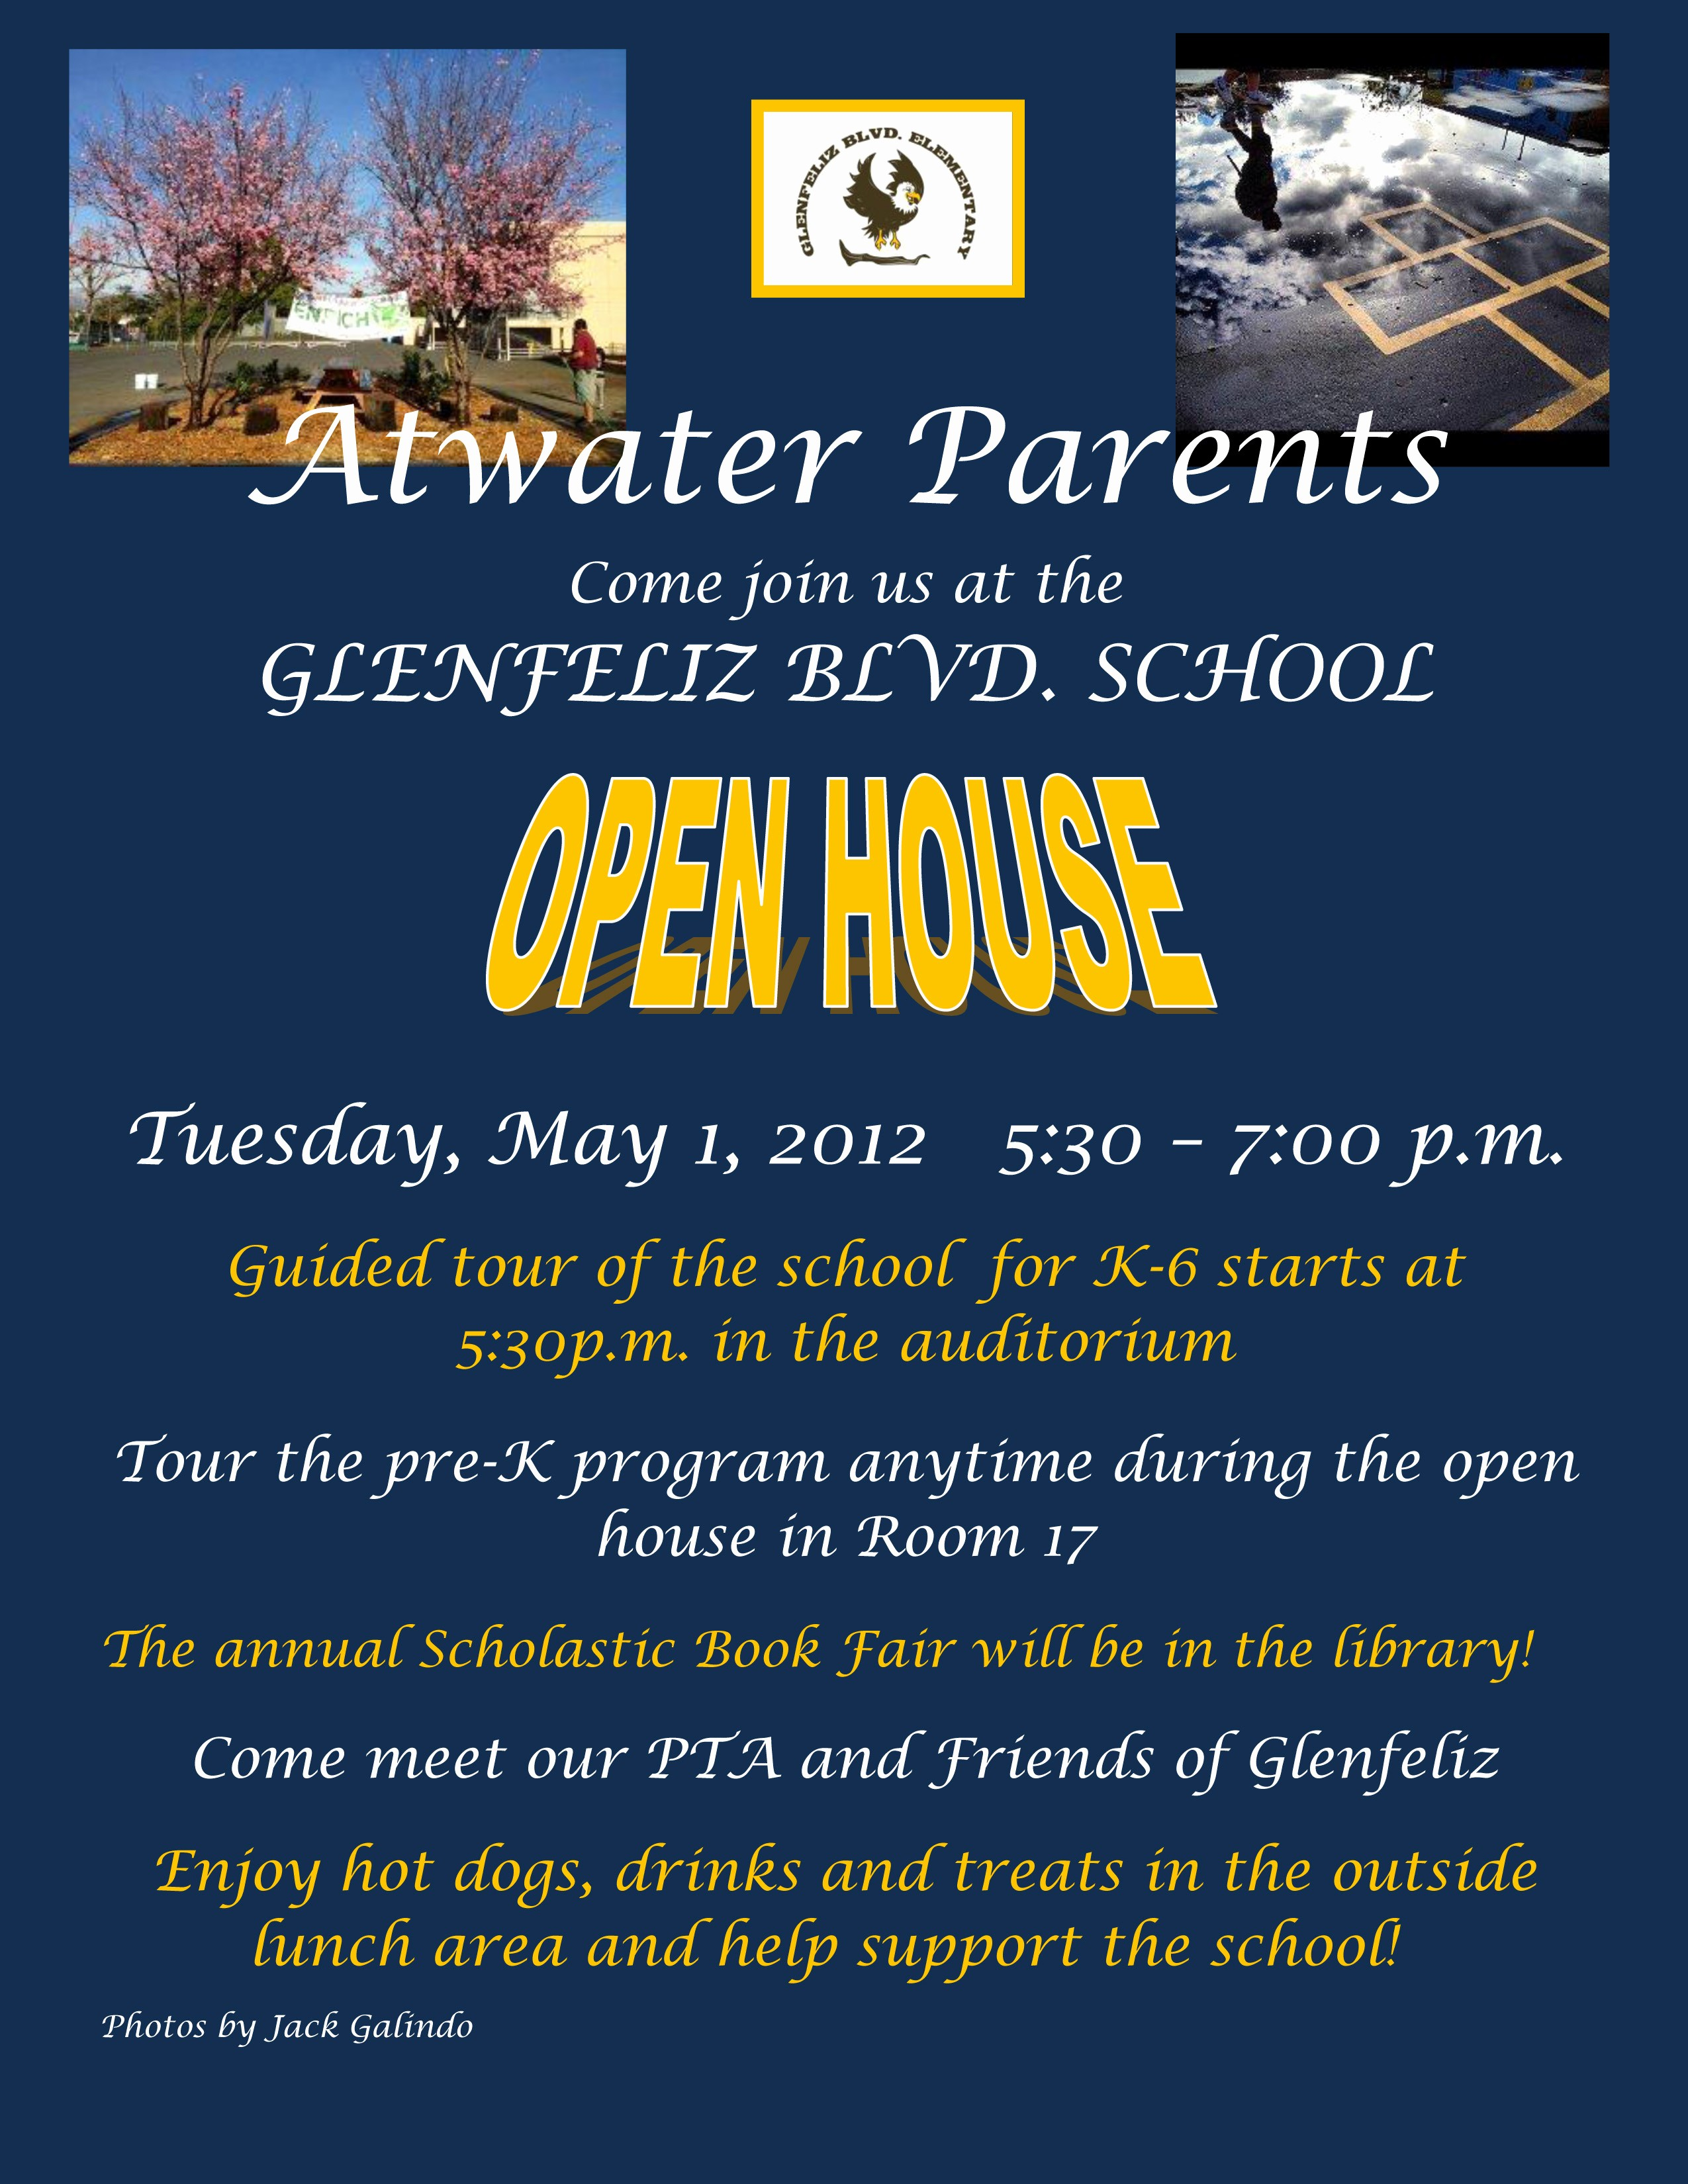 Open House Flyer for School Lovely School tour for Prospective Parents